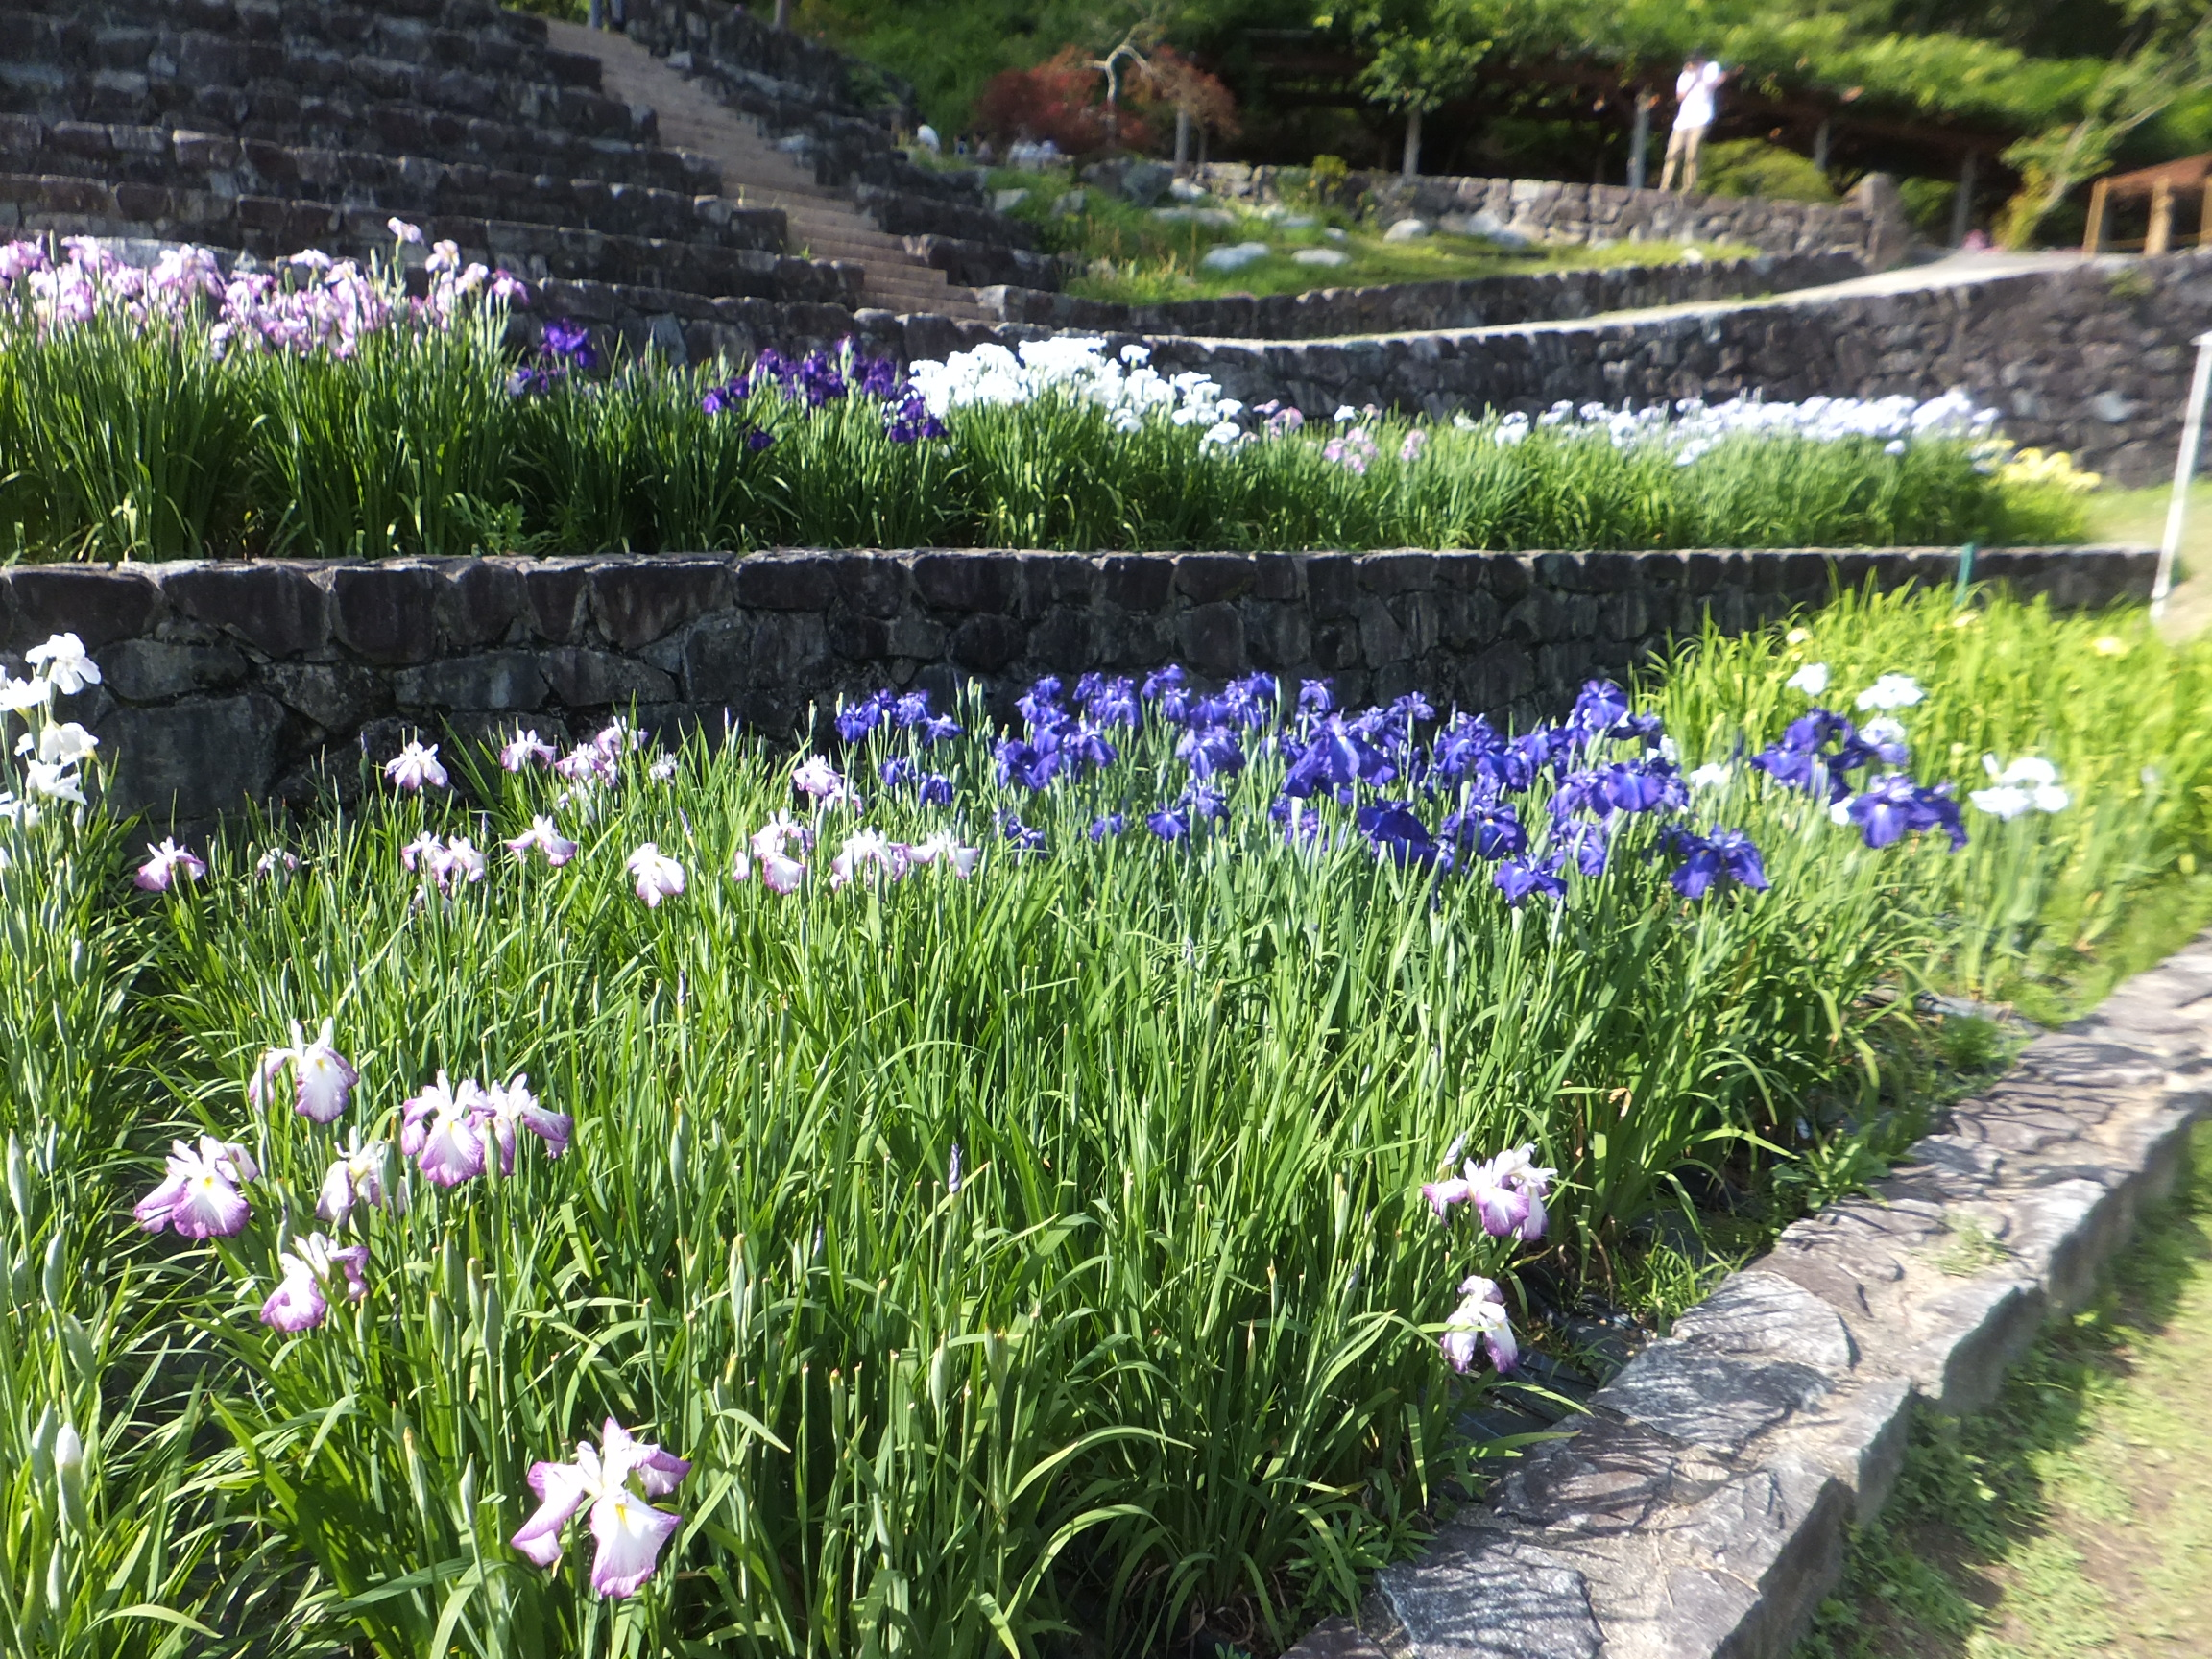 Captivating File:Banshu Yamasaki Iris Garden In 2013 6 16 No,81.